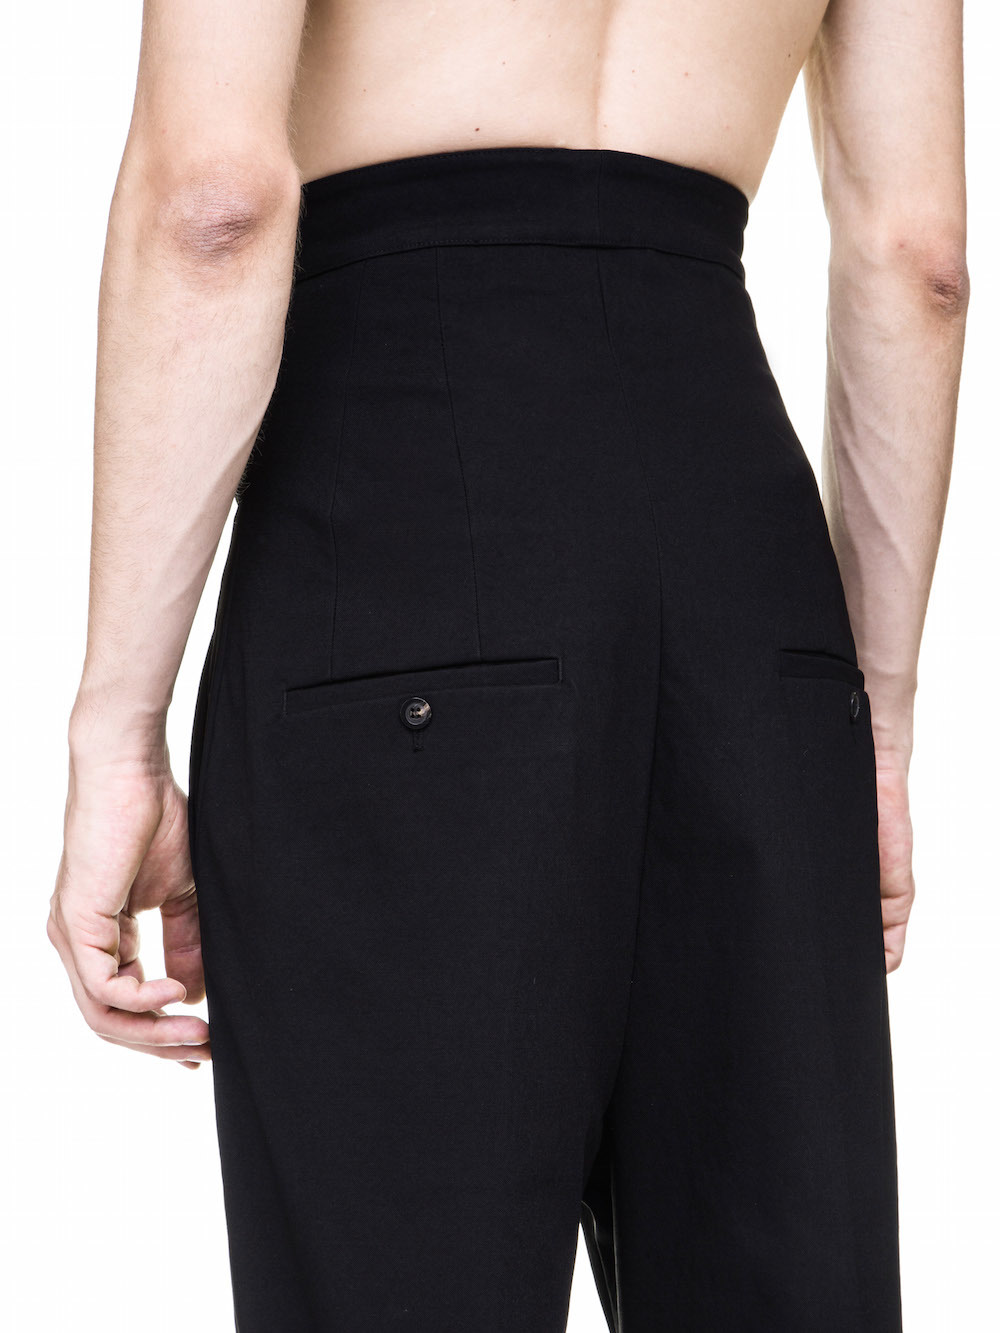 RICK OWENS OFF-THE-RUNWAY DIRT JEAN IN BLACK